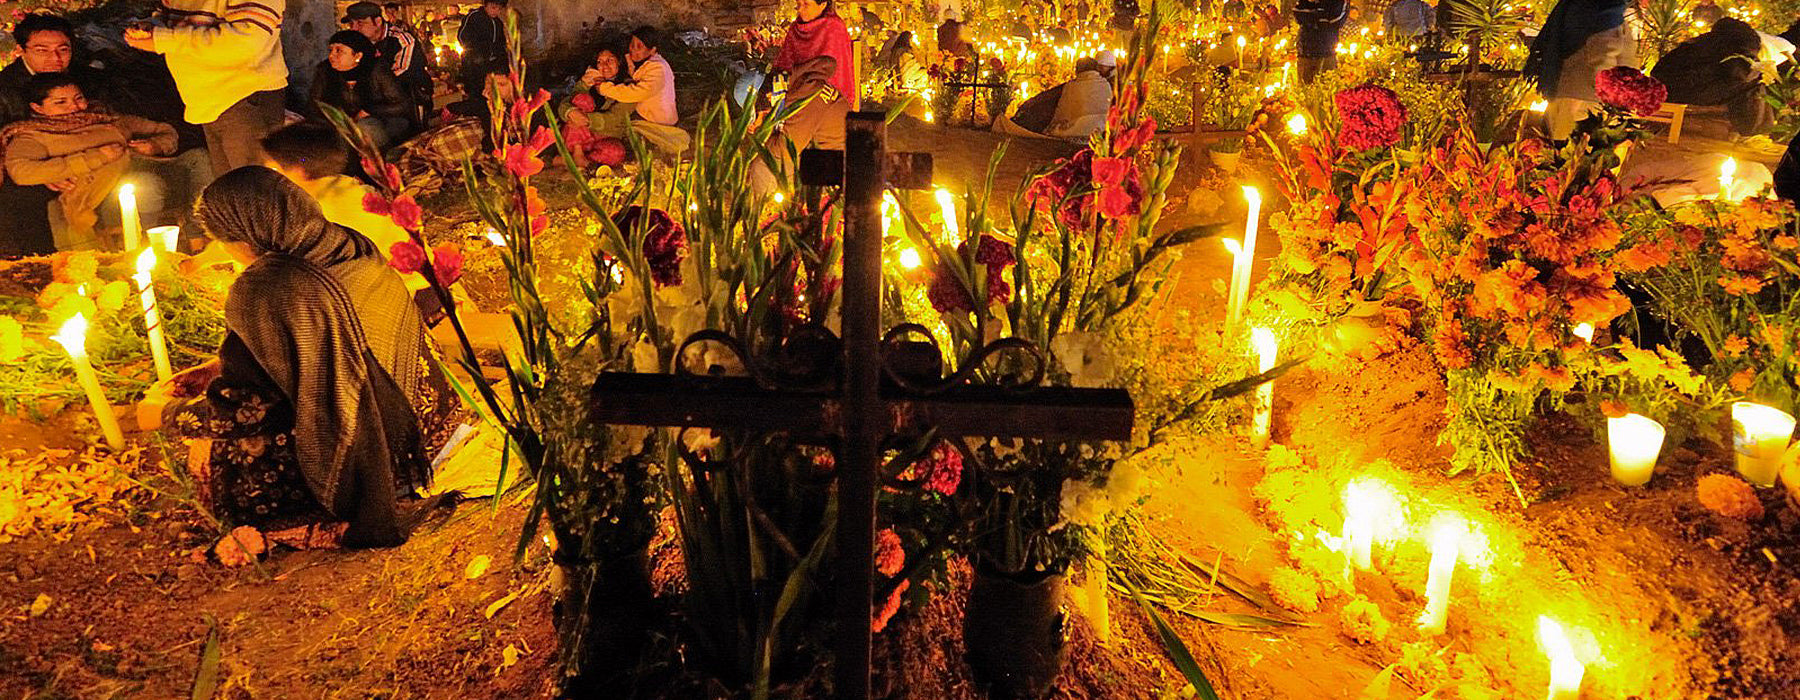 Tända Ljus Under Day Of The Dead